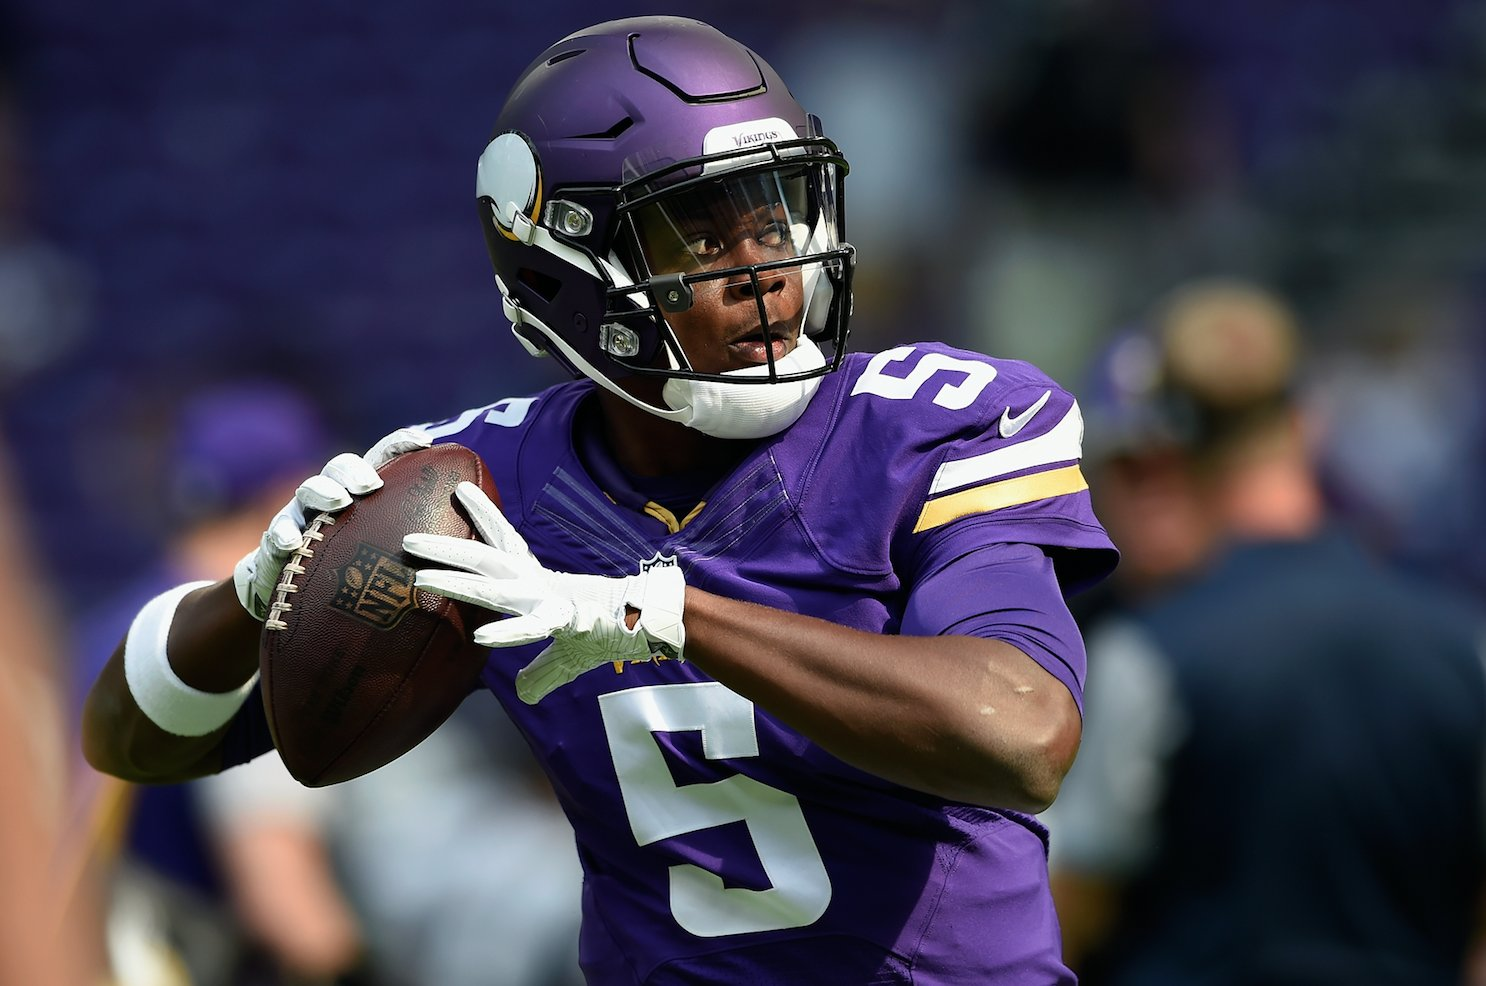 Its not necessarily a shock but the Minnesota Vikings will officially move Teddy Bridgewater to the active 53man roster